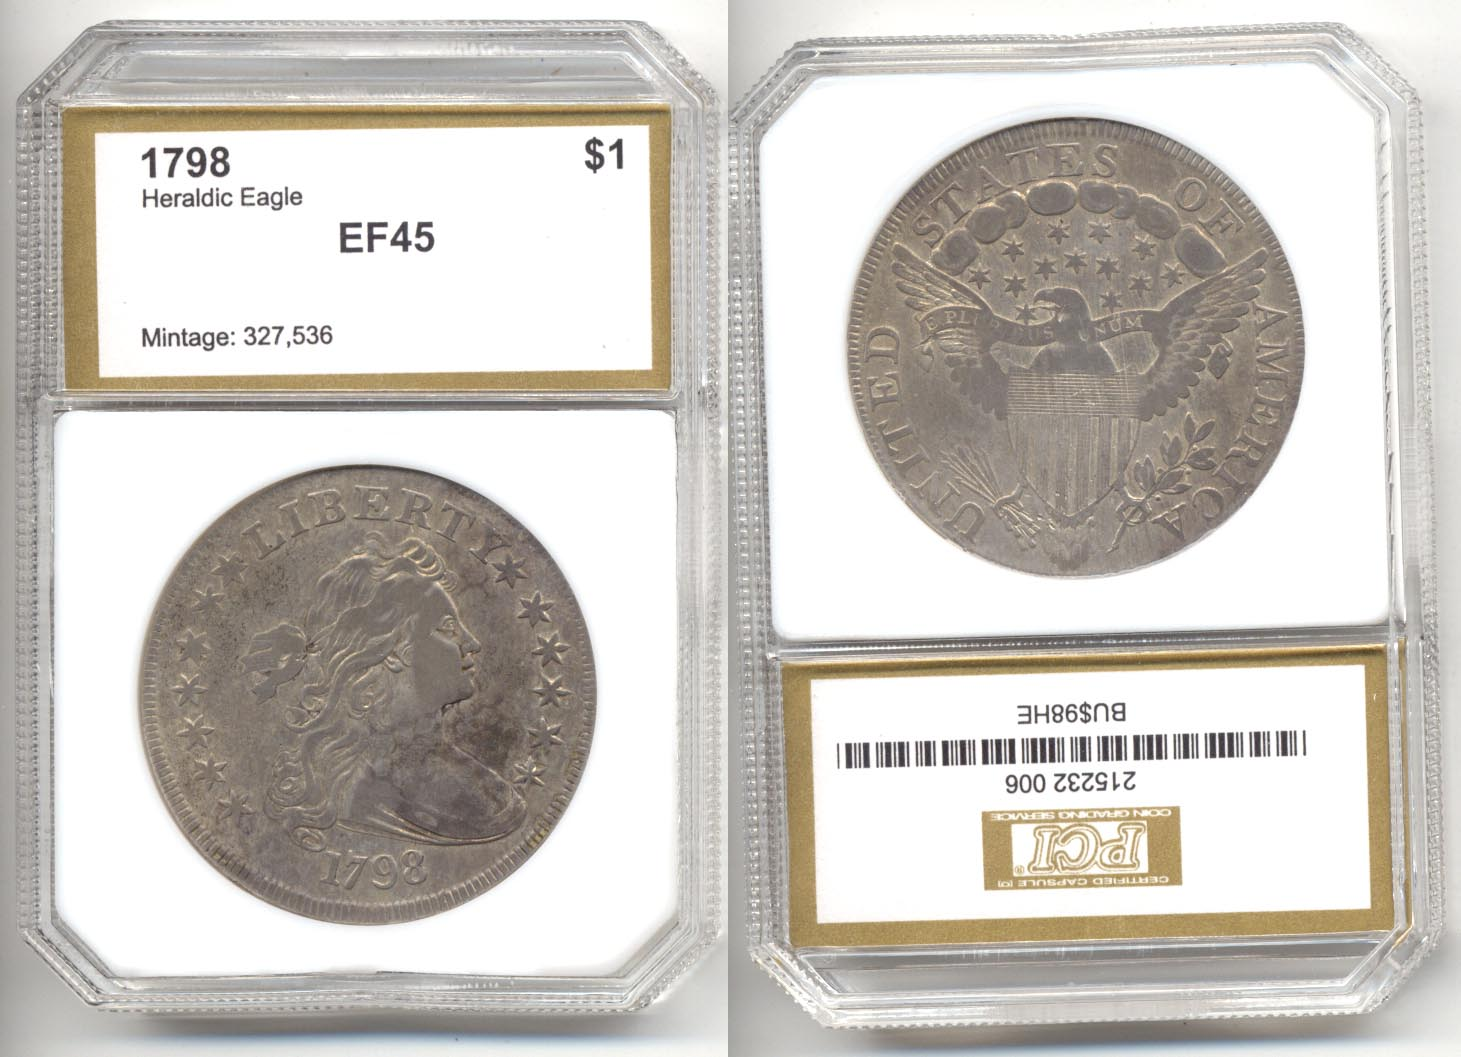 1798 Draped Bust Large Eagle Silver Dollar PCI EF-45